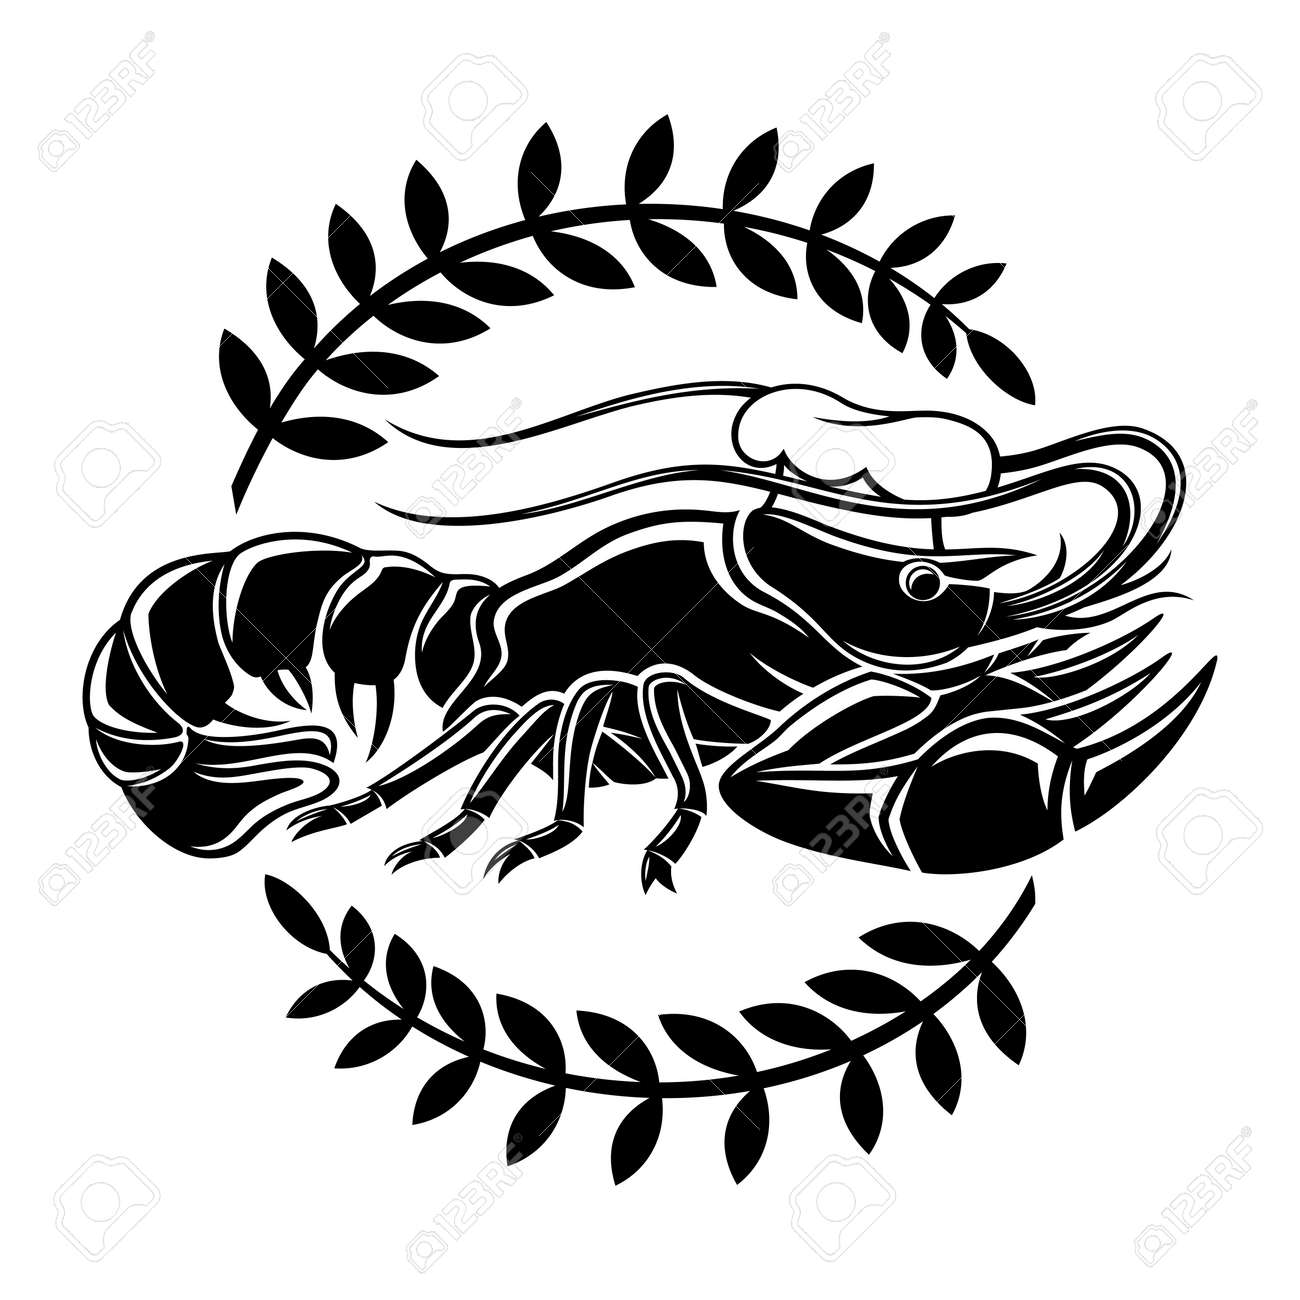 Illustration with lobster icon in chef's hat isolated on white background. - 167288149